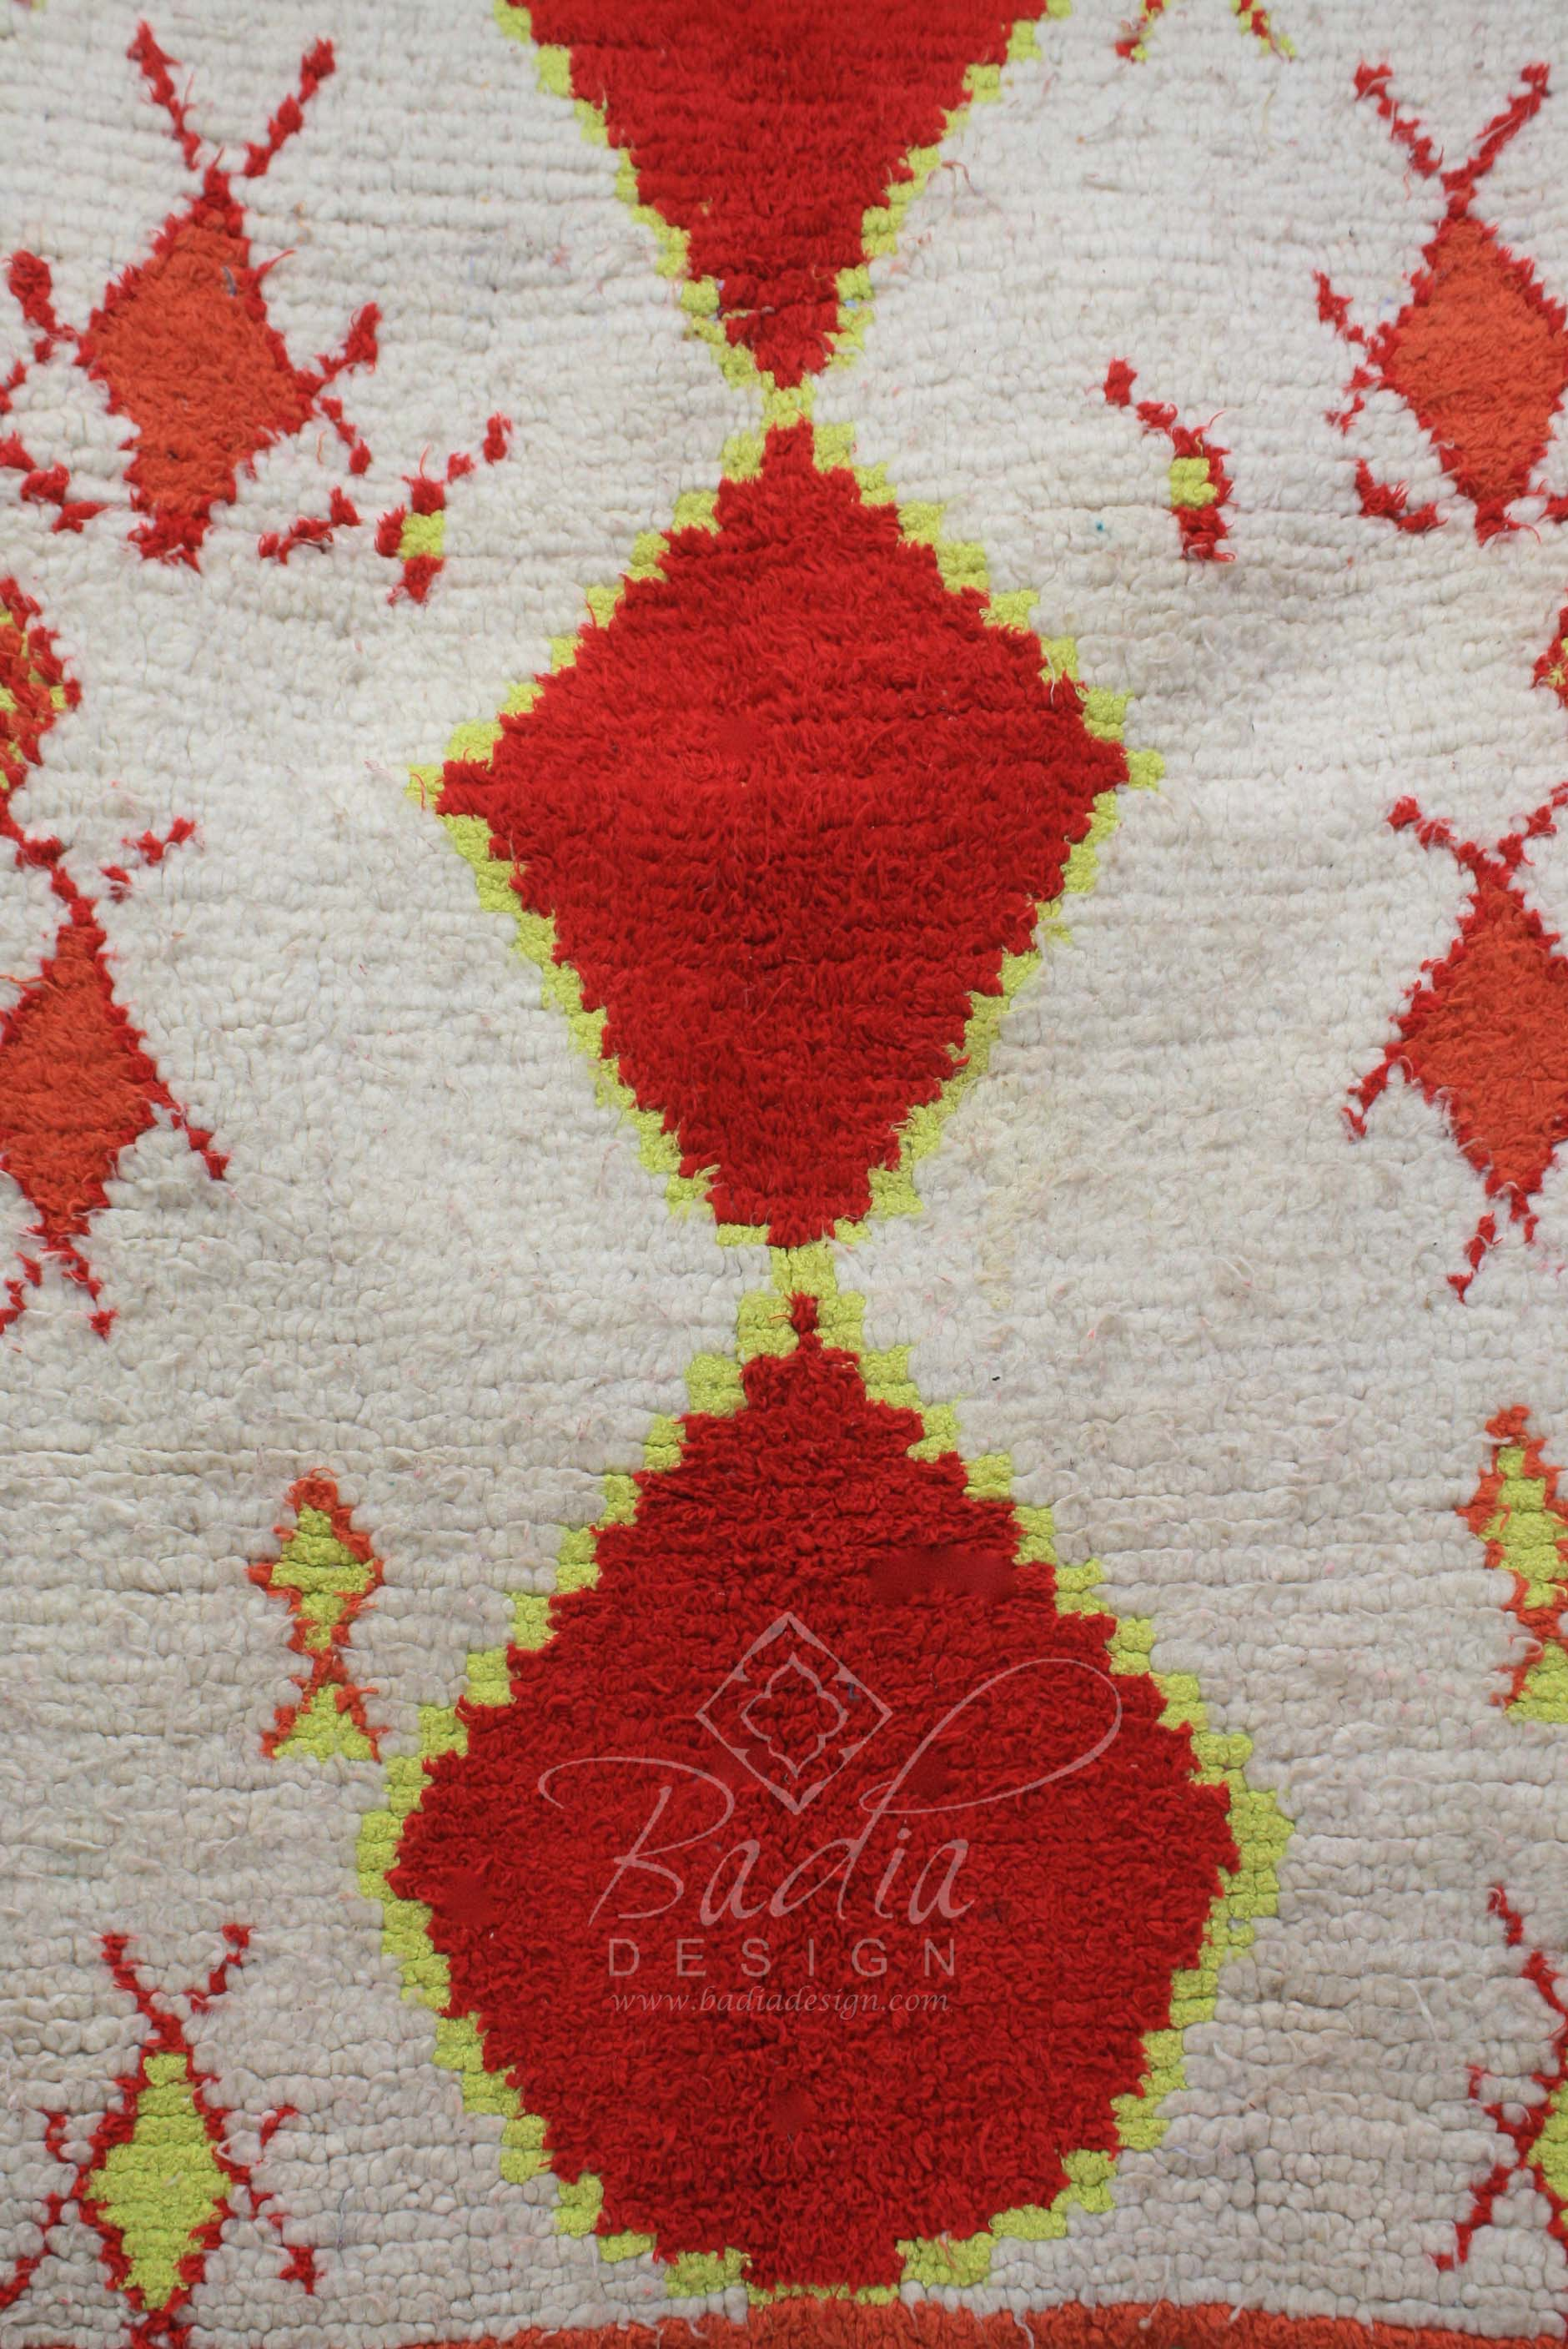 moroccan-hand-woven-berber-rugs-r927-2-1.jpg